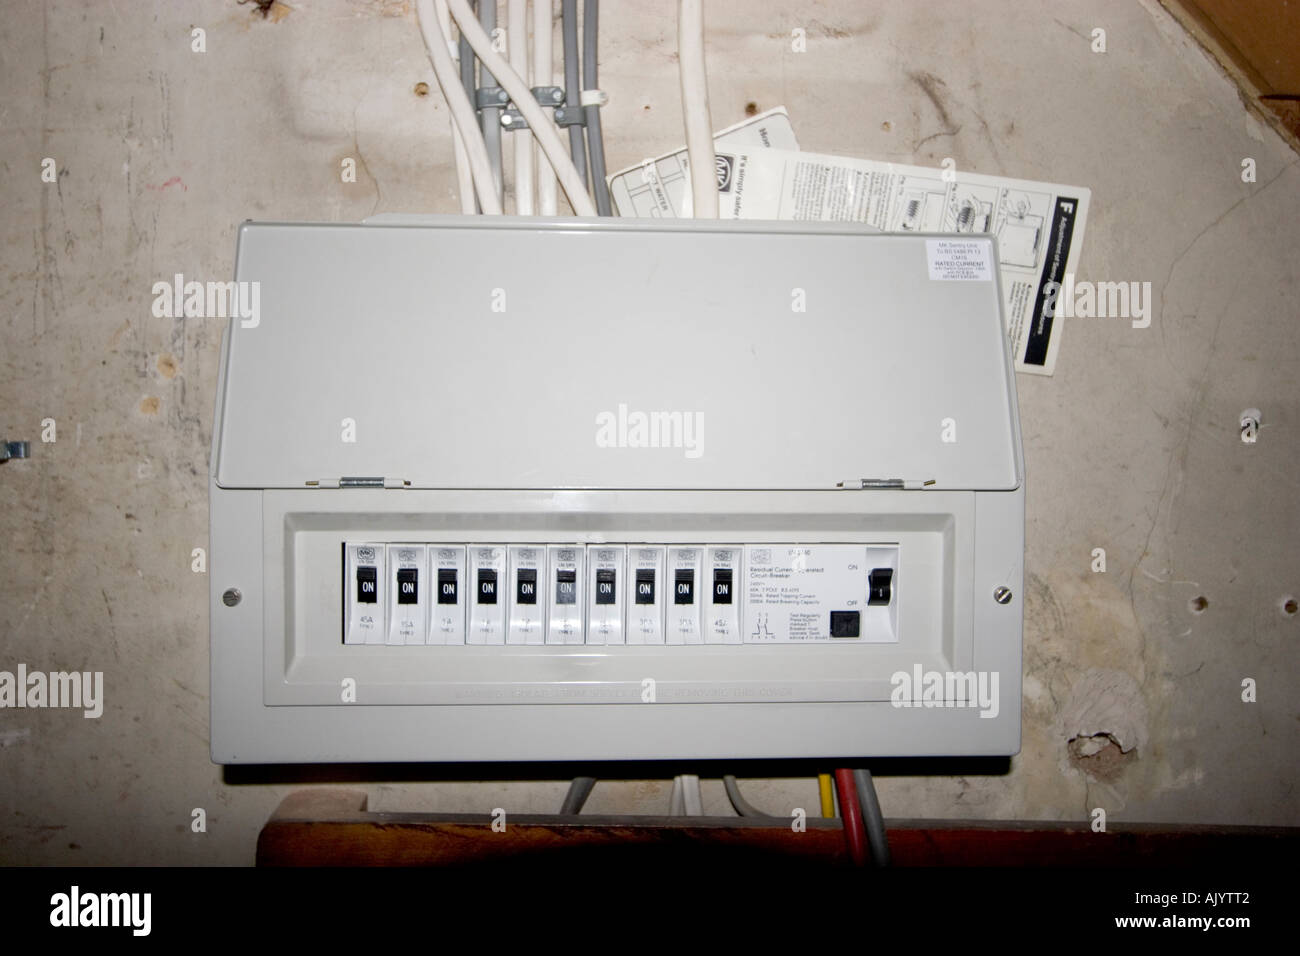 uk electrical fuse box under stairs of house AJYTT2 uk electrical fuse box under stairs of house stock photo, royalty fuse box in house at fashall.co